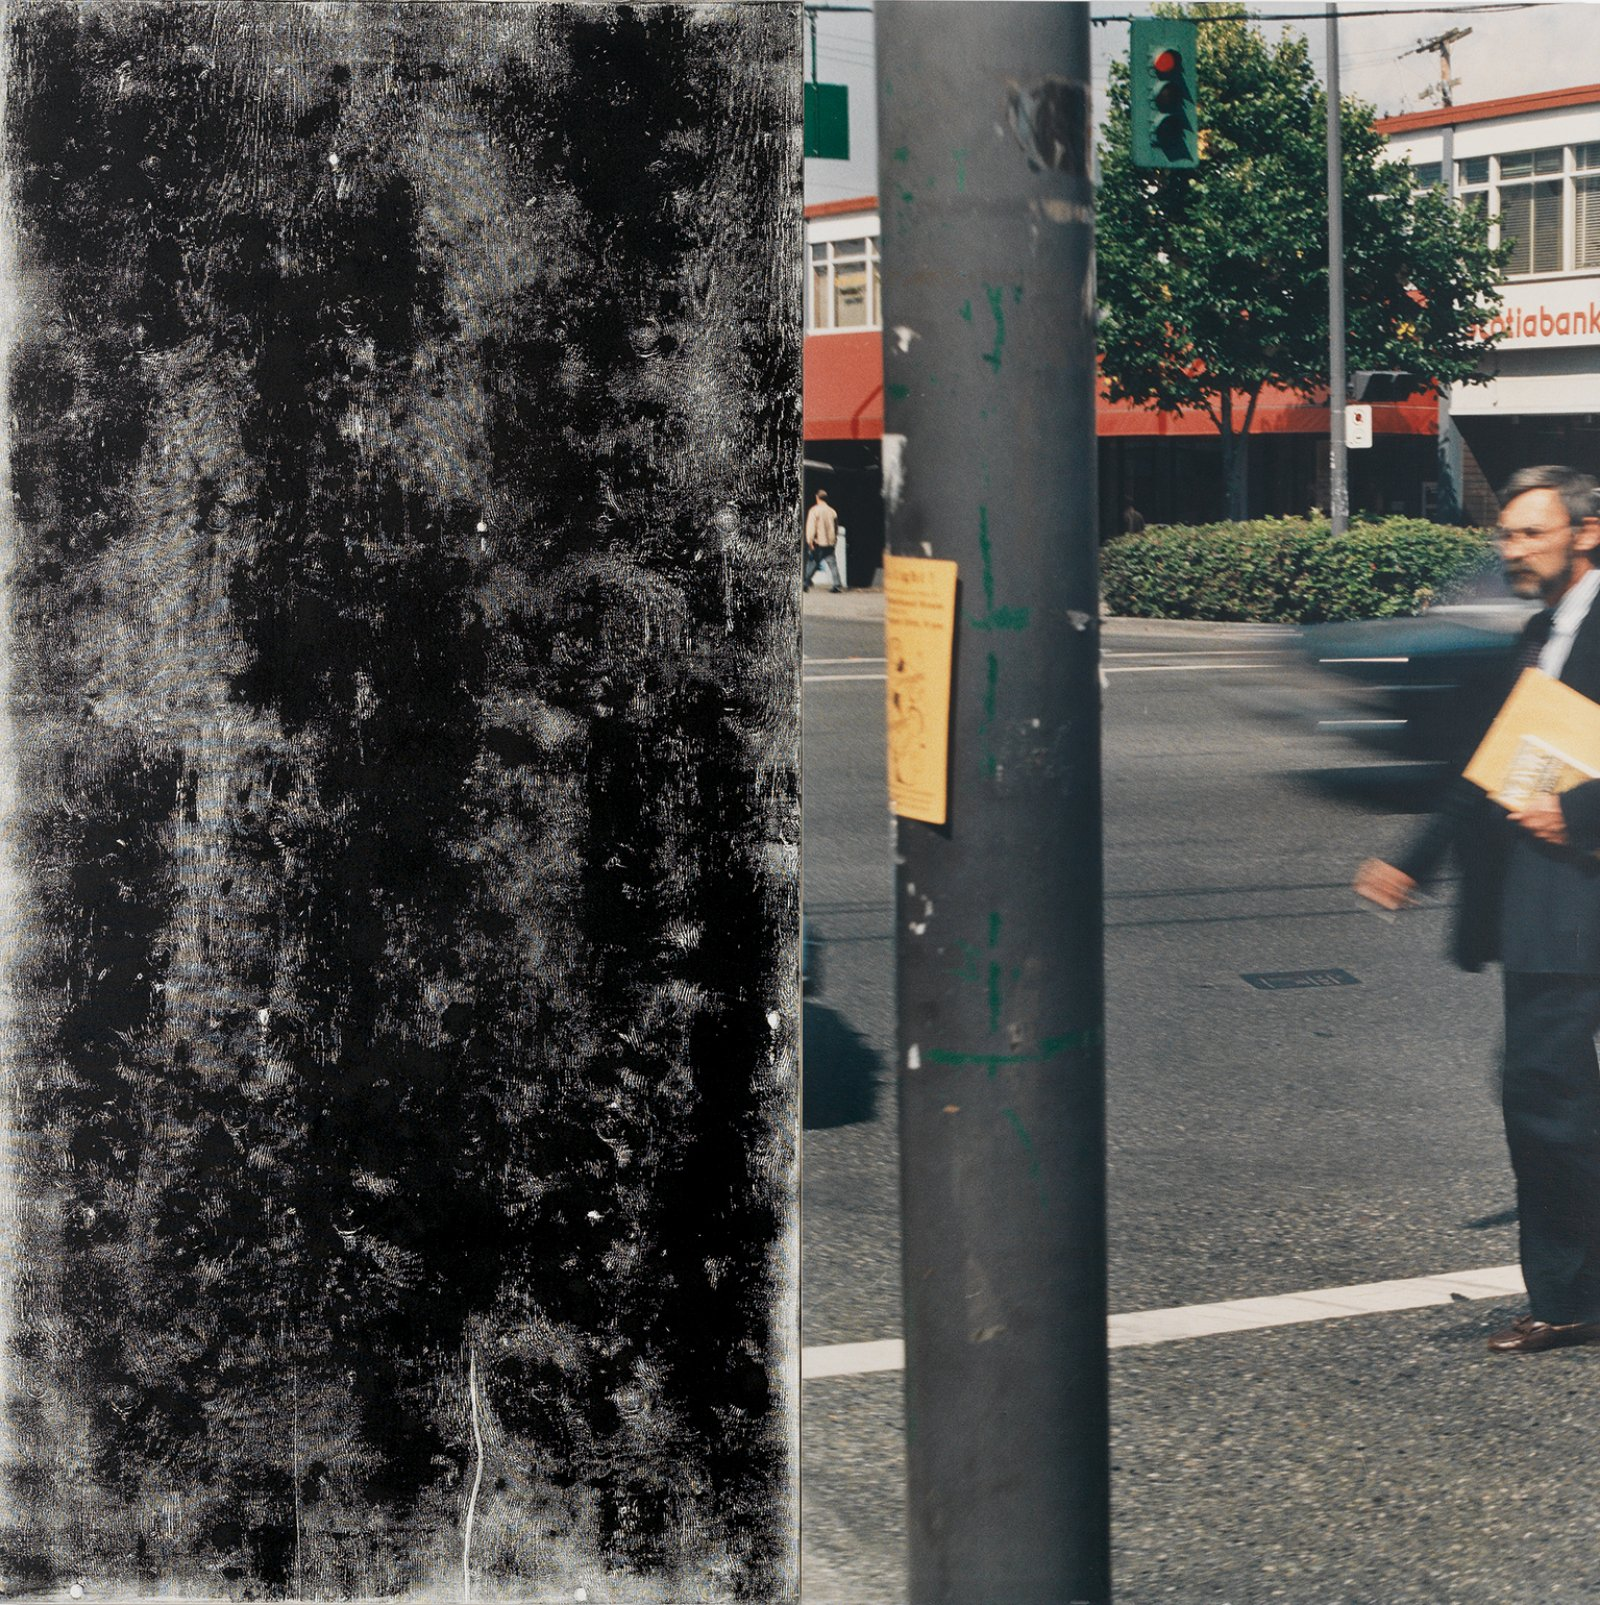 Ian Wallace, In the Street (George), 1989, photolaminate with acrylic and ink monoprint on canvas, diptych, 96 x 96 in. (244 x 244 cm). Installation view, A Literature of Images, Kunsthalle Zürich, 2008 by Ian Wallace